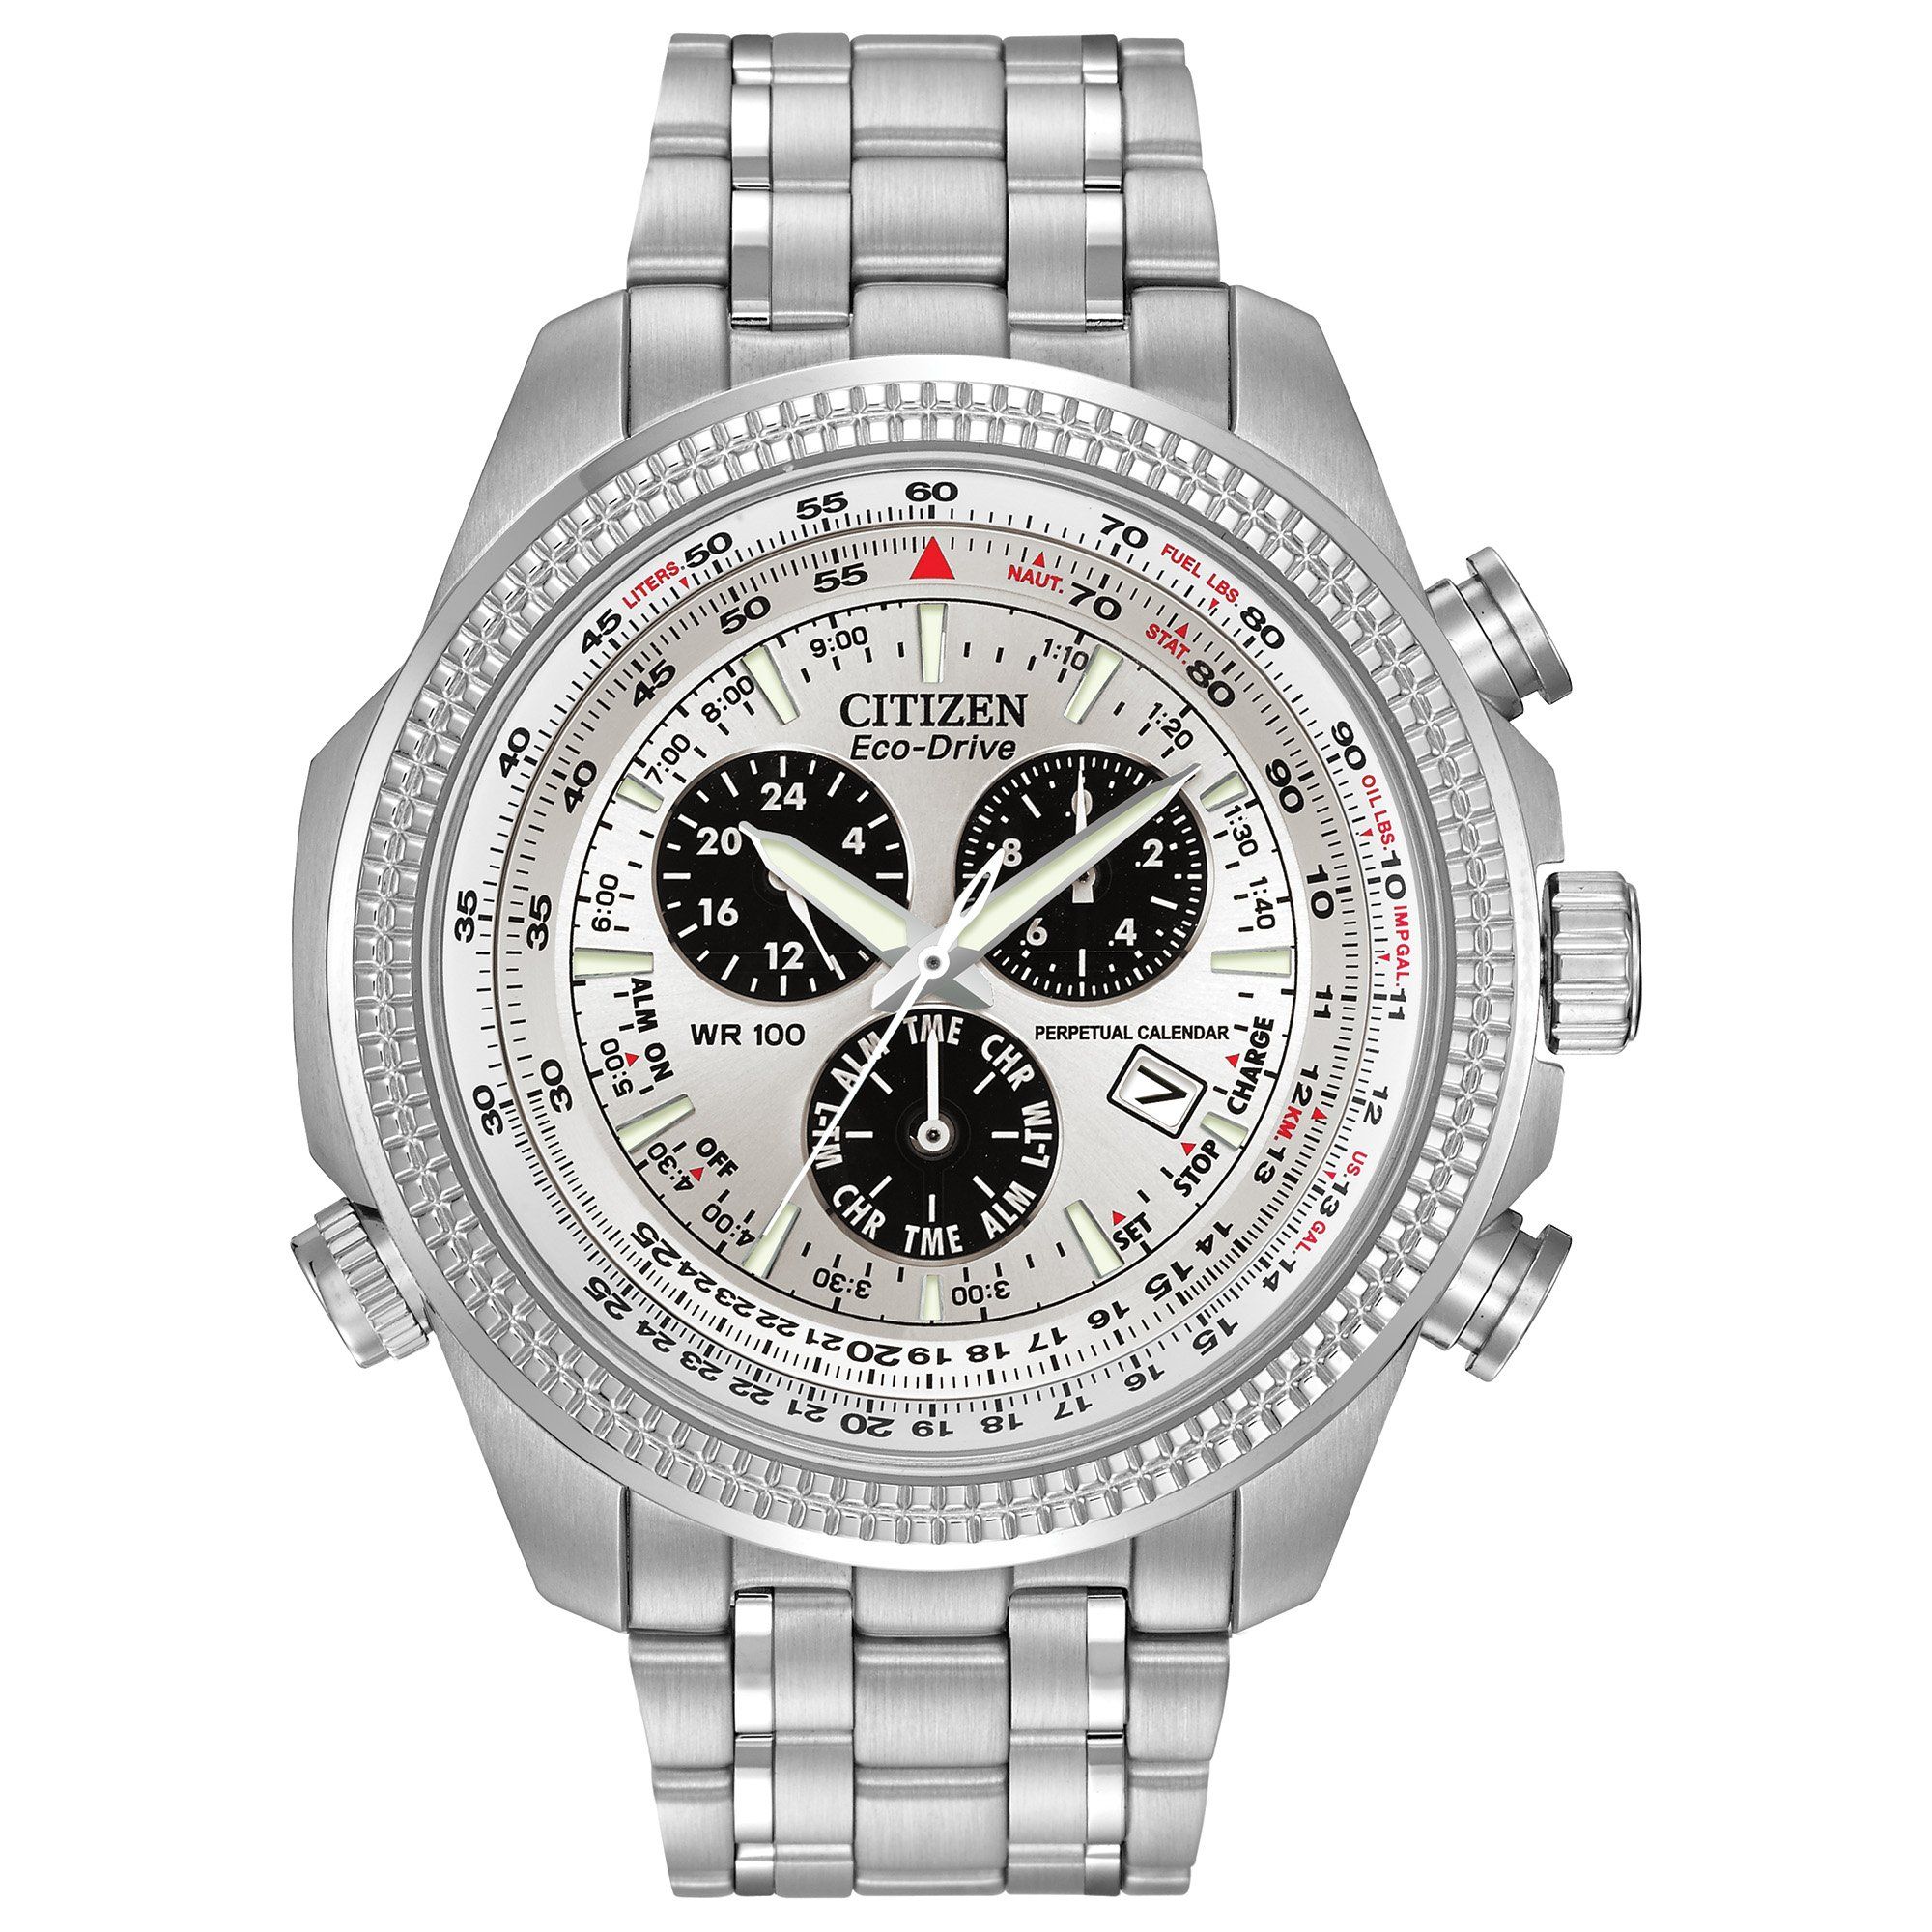 Citizen Men's Eco-Drive Chronograph Watch with Perpetual Calendar and Date, BL5400-52A